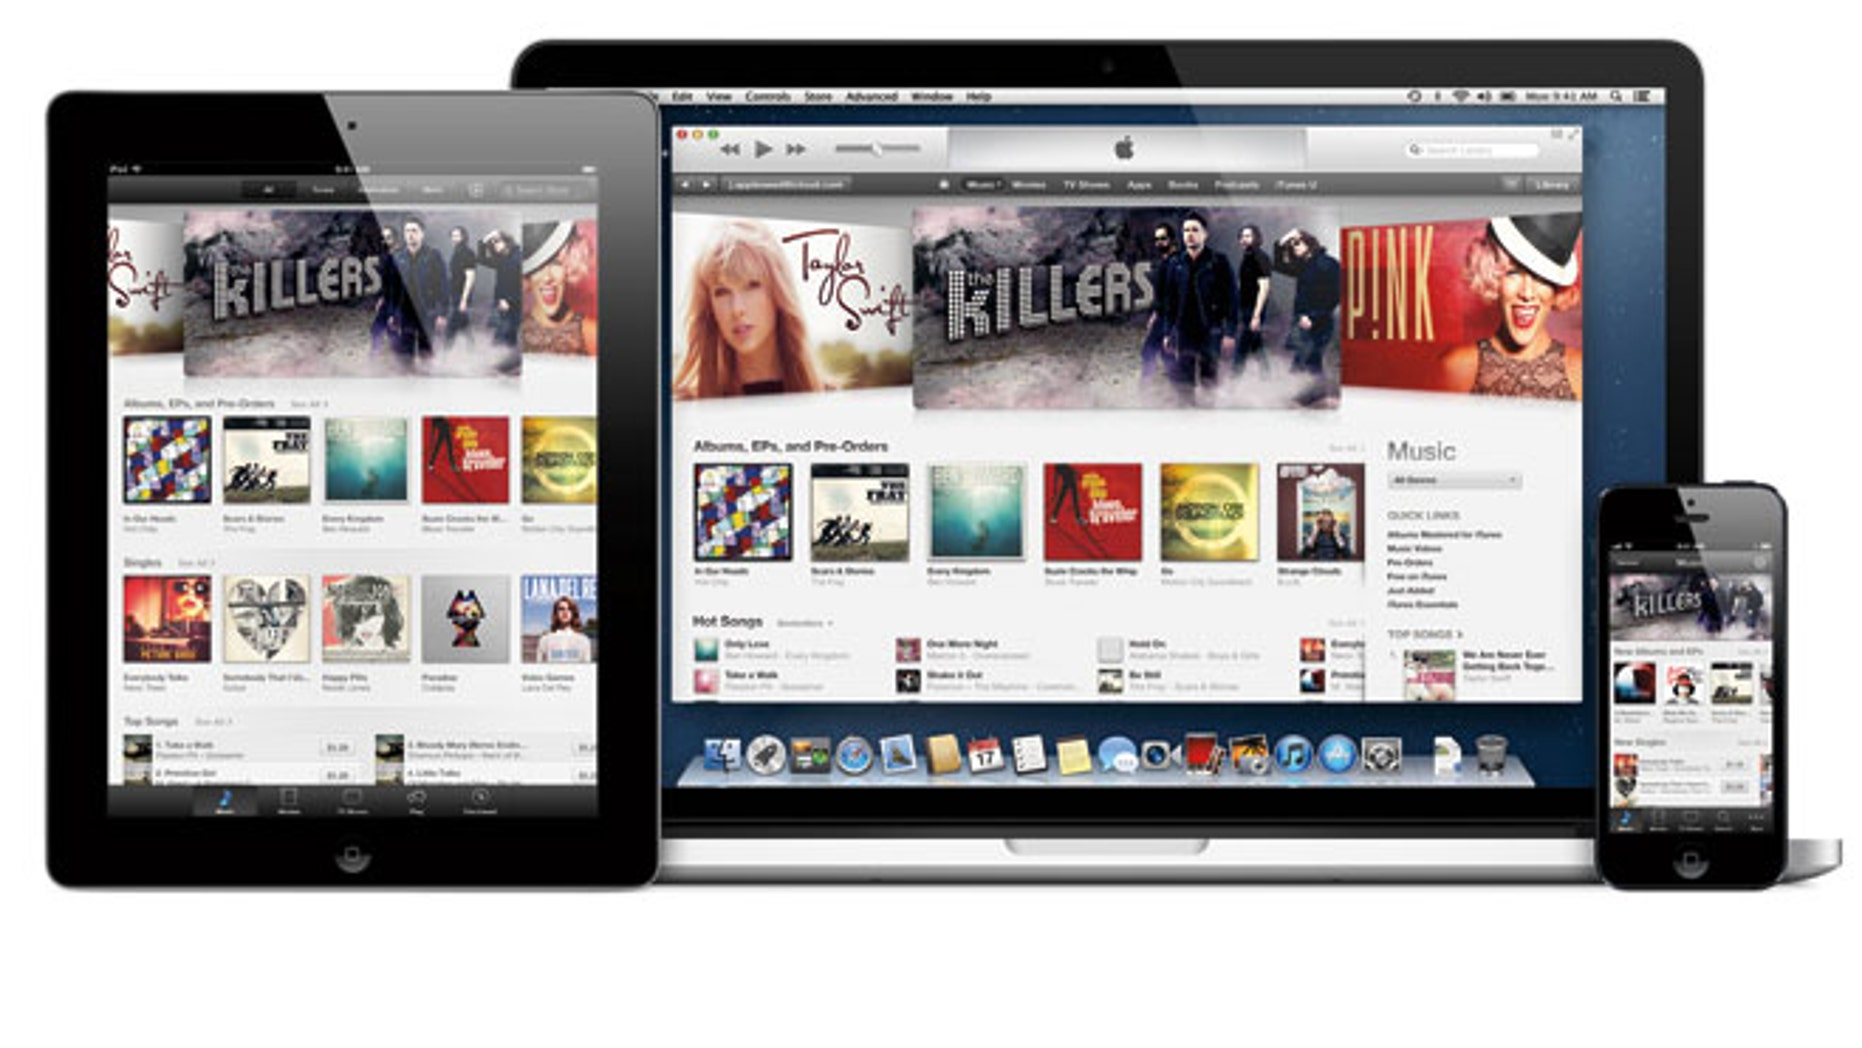 Apple iTunes usually carries movies and music. Russian users found a very different kind of content recently.